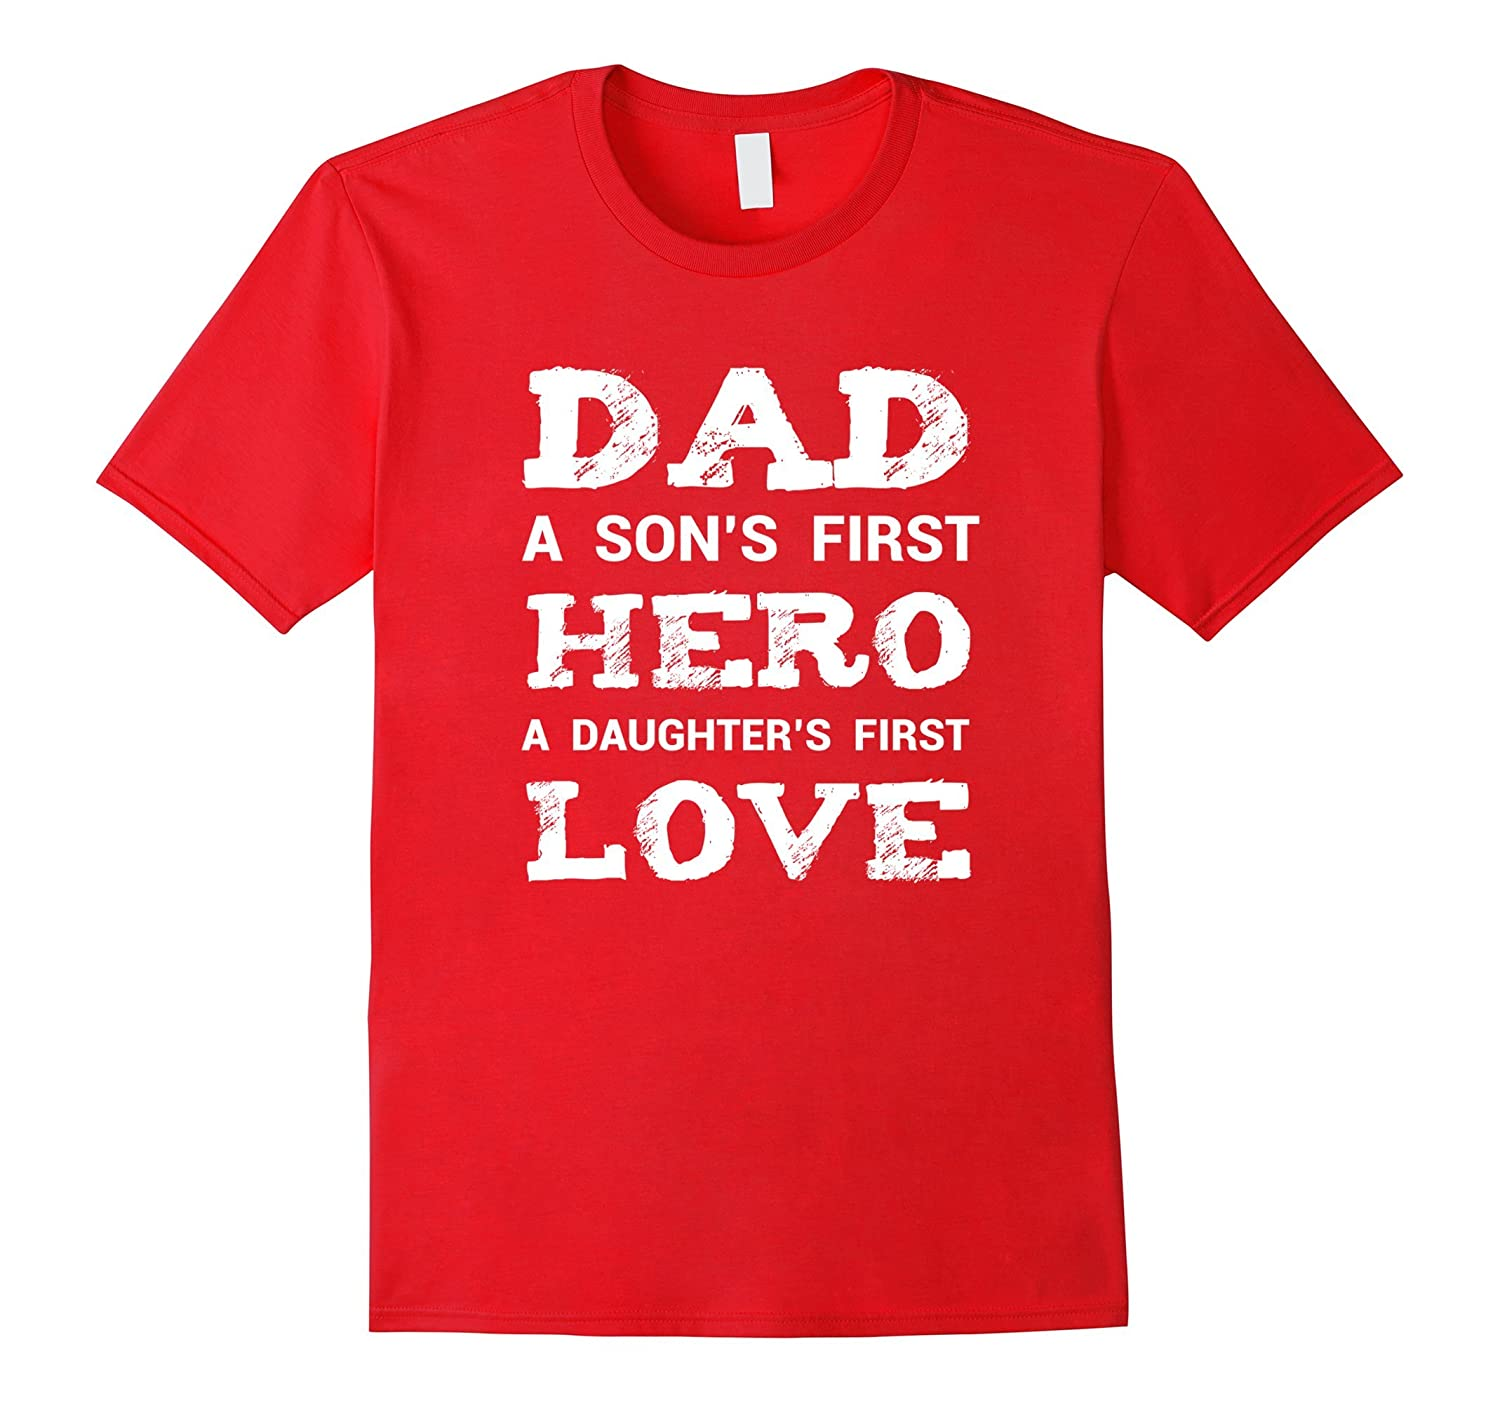 Cute Daddy Son Daughter Shirt New Dad Fathers Day Gift-PL